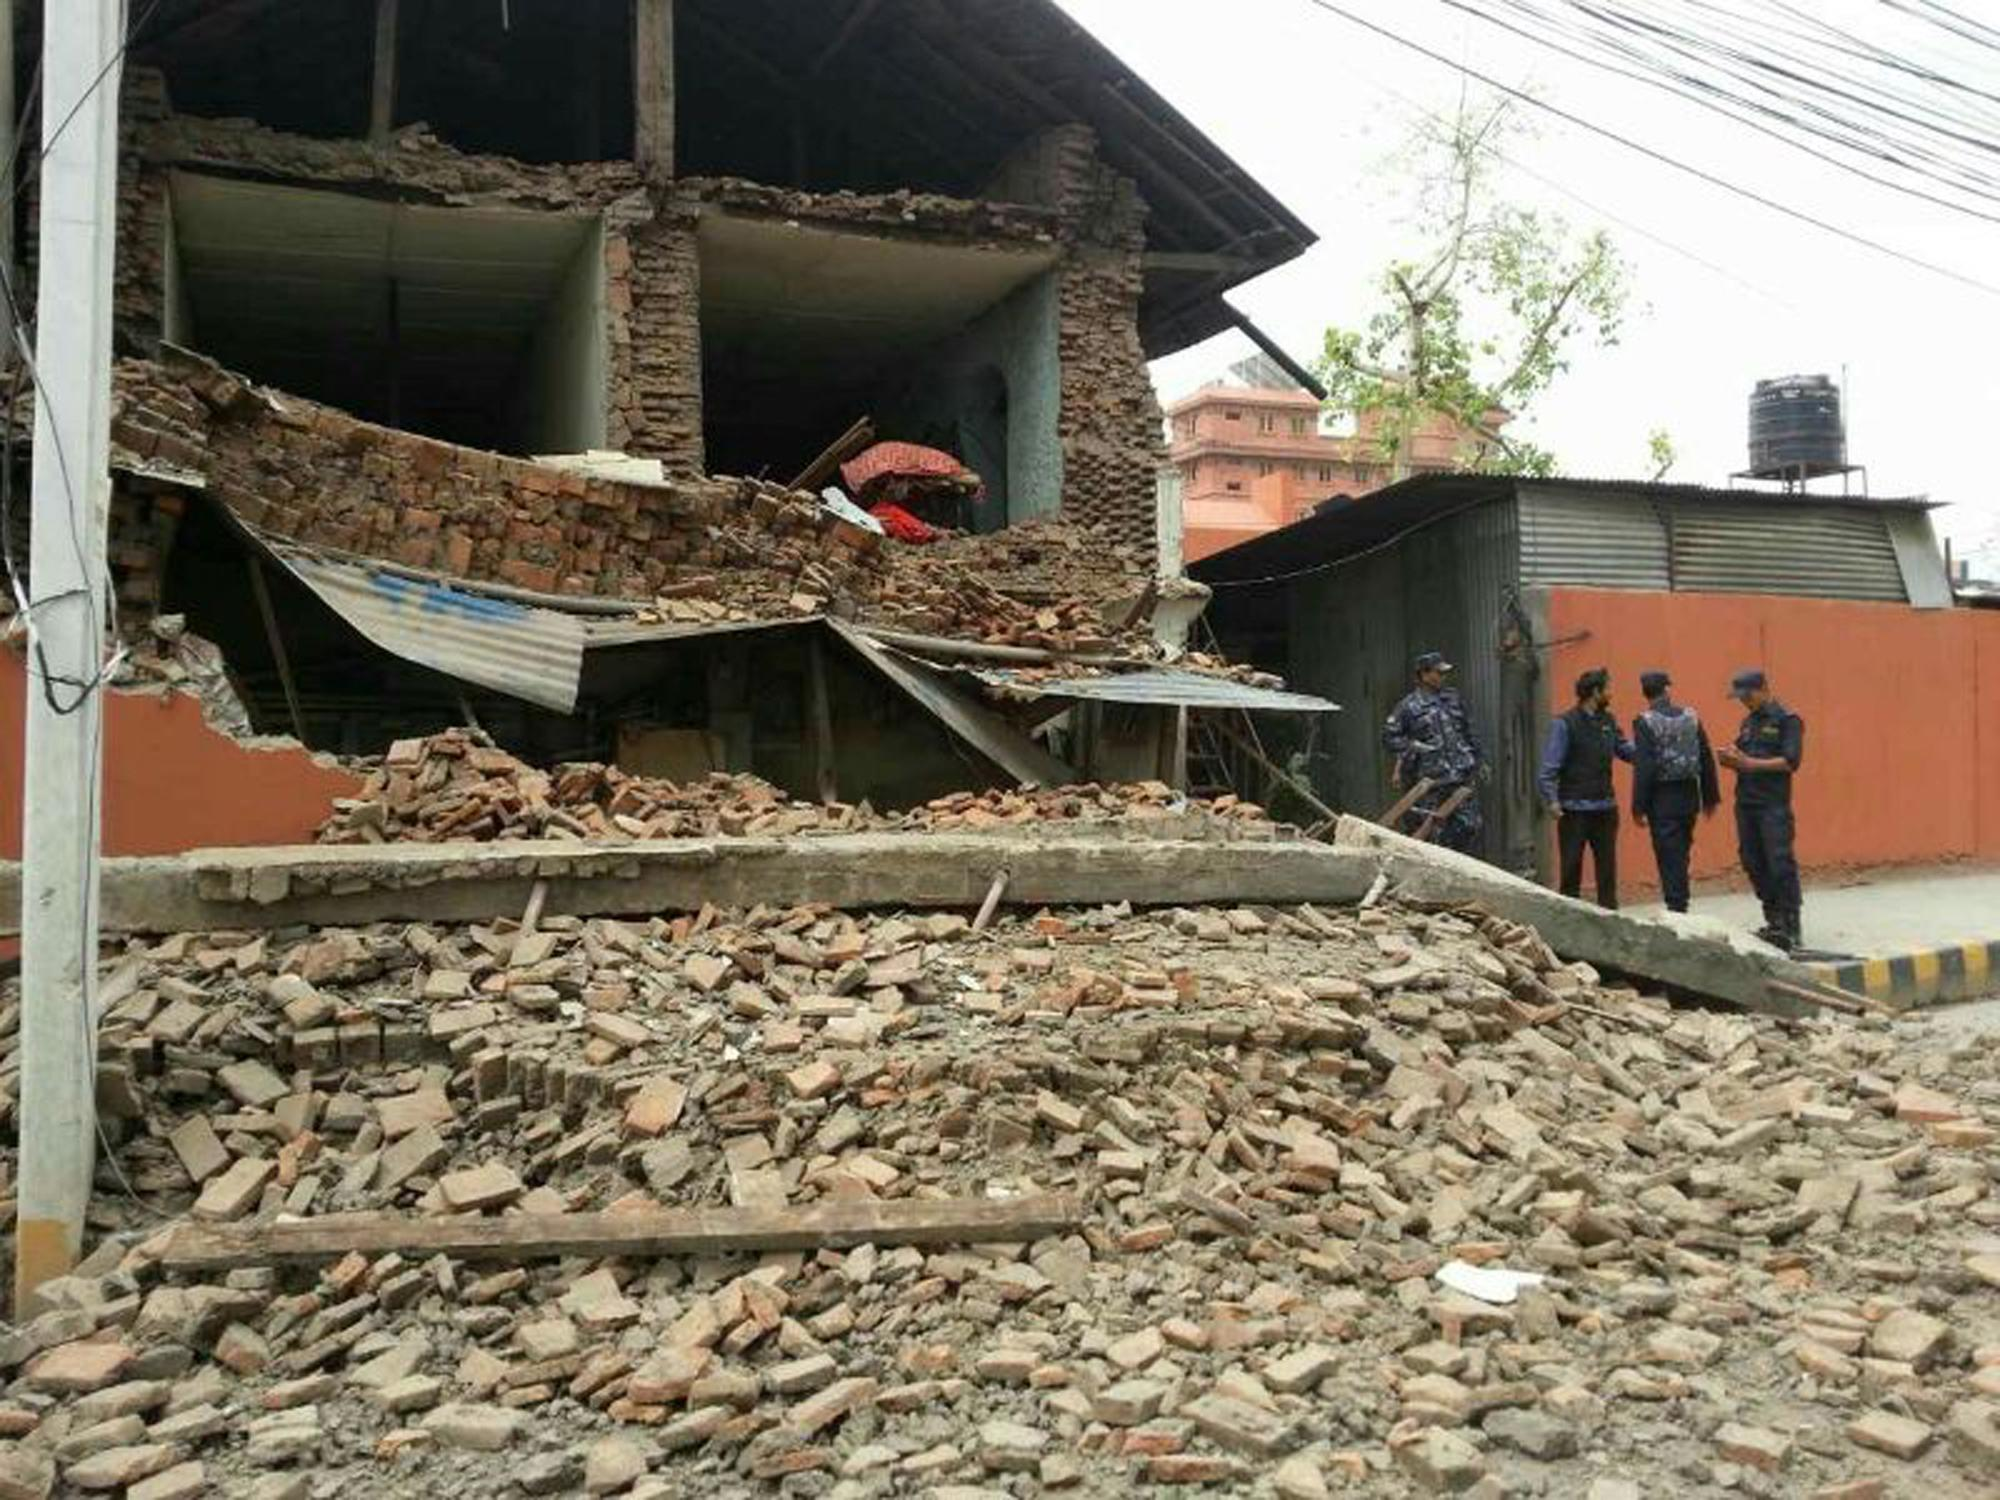 Magnitude-7.9 quake hits Nepal, causing big damage, injuries